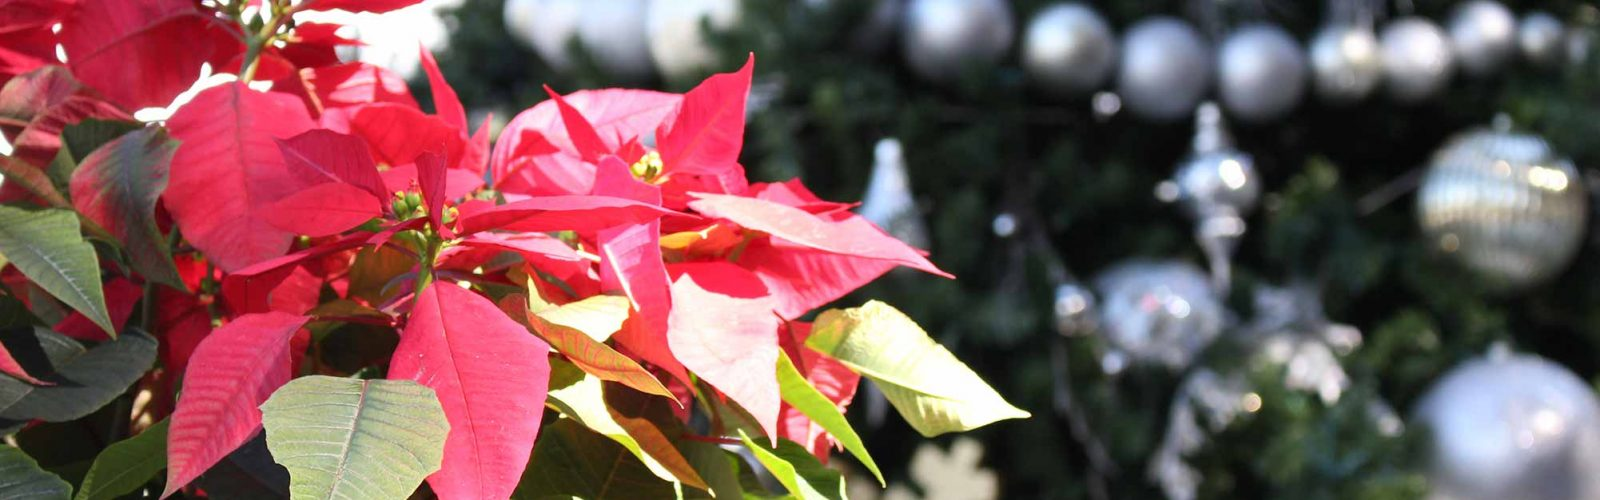 Christmas Tree and red poinsettia